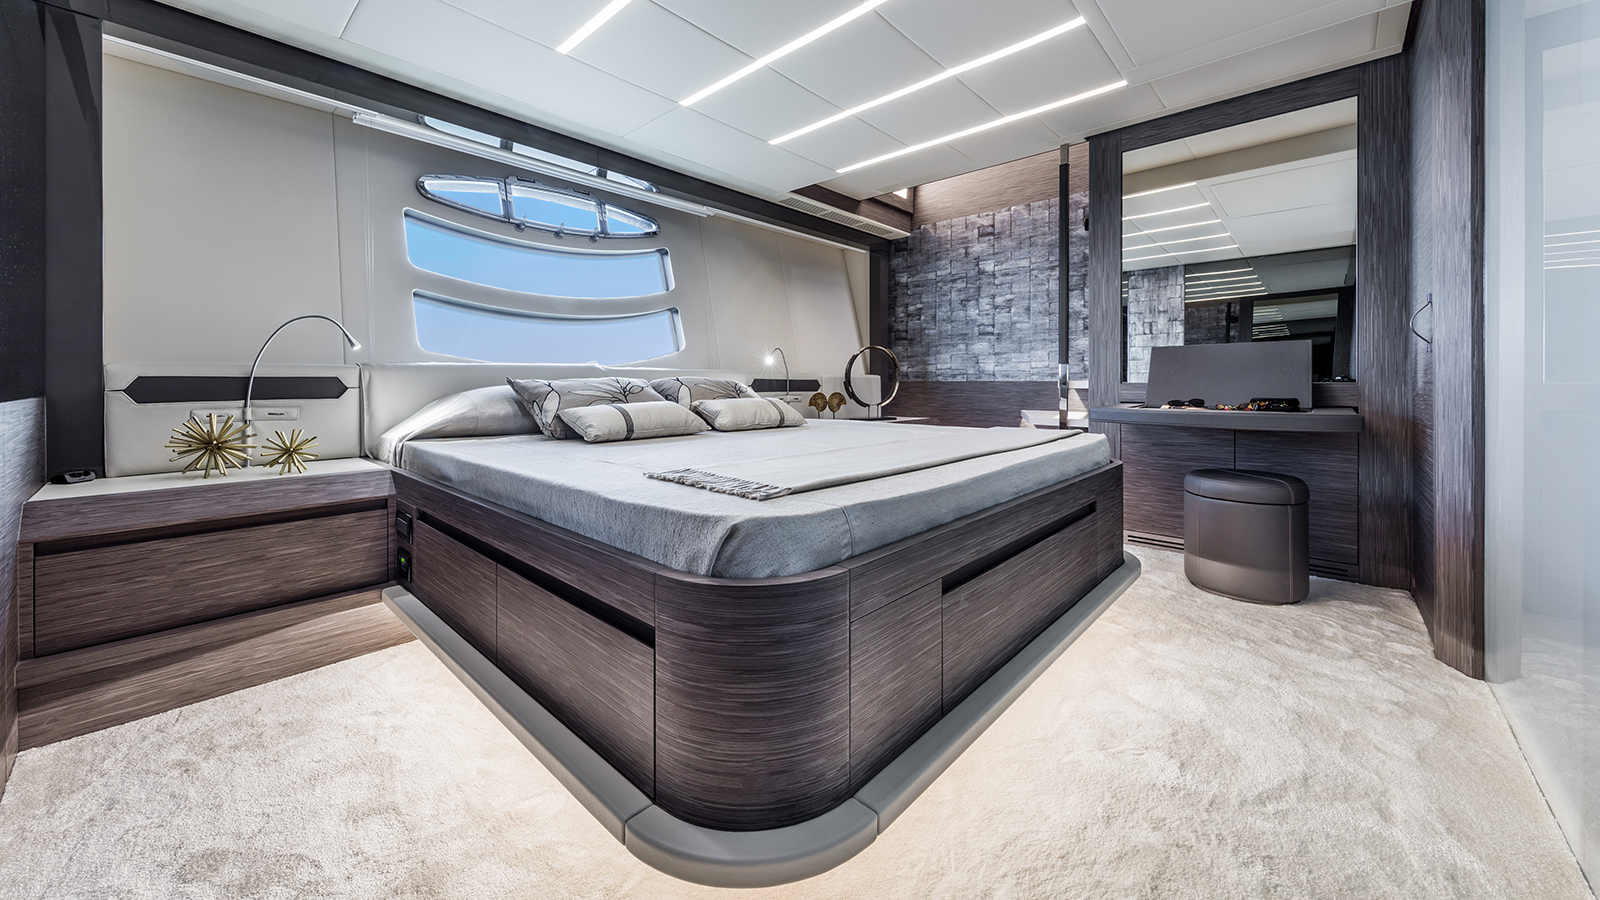 the-master-cabin-of-the-pershing-82-vhp-yacht